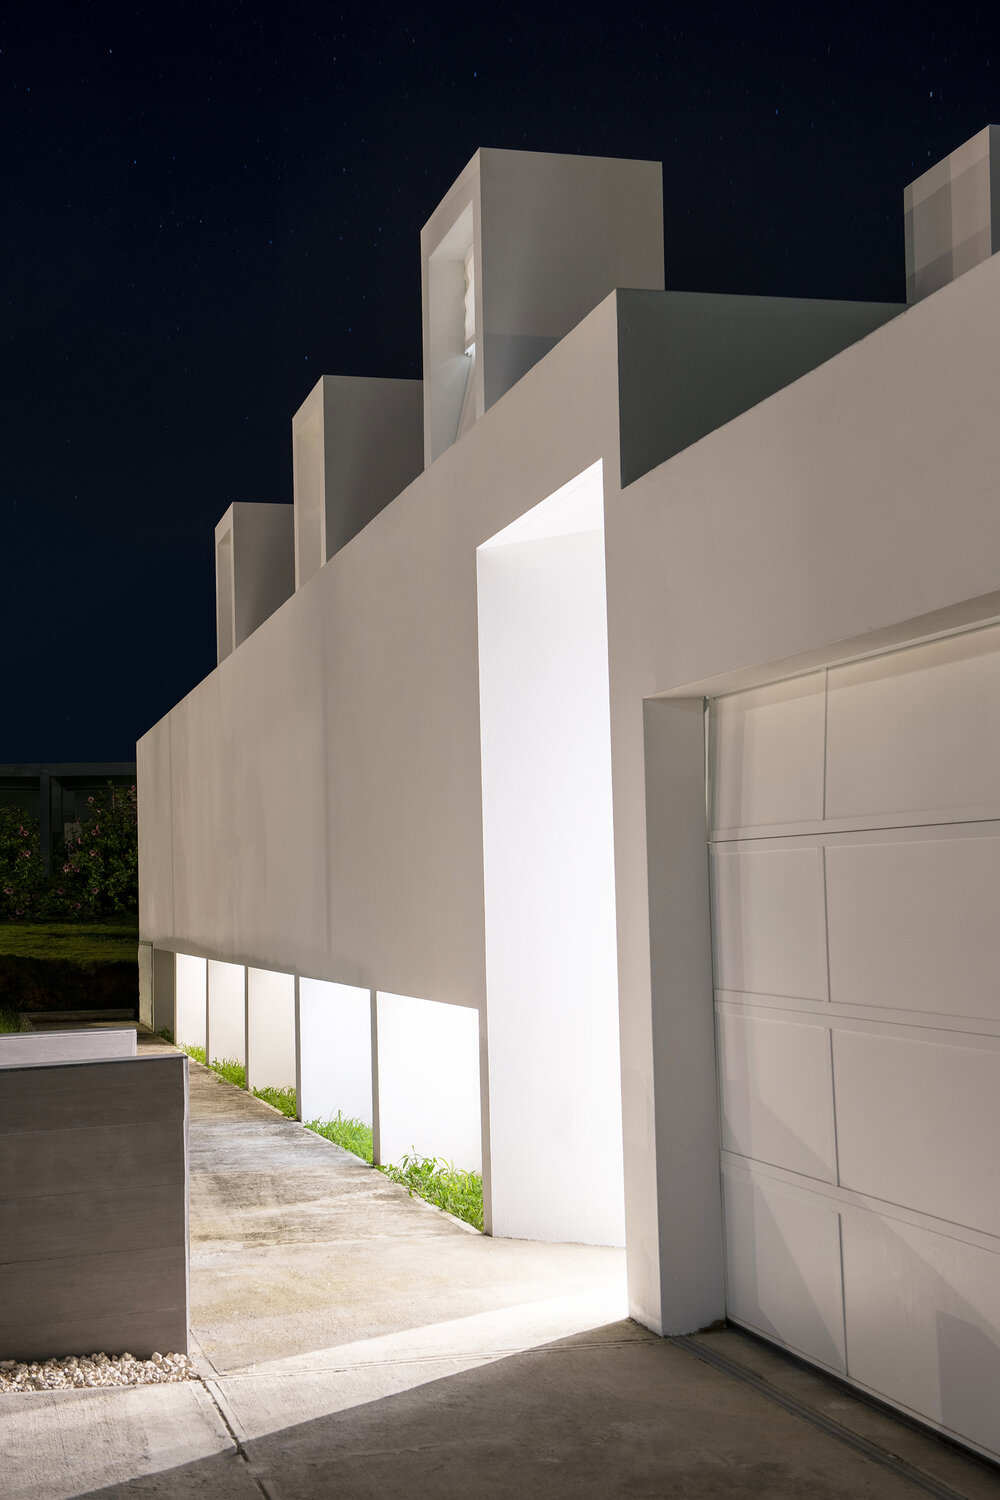 Casa_Flores_night_entrance_architecture_Puerto_rico_fuster_architects_house+Photo+by+Jaime+Navarro (1)